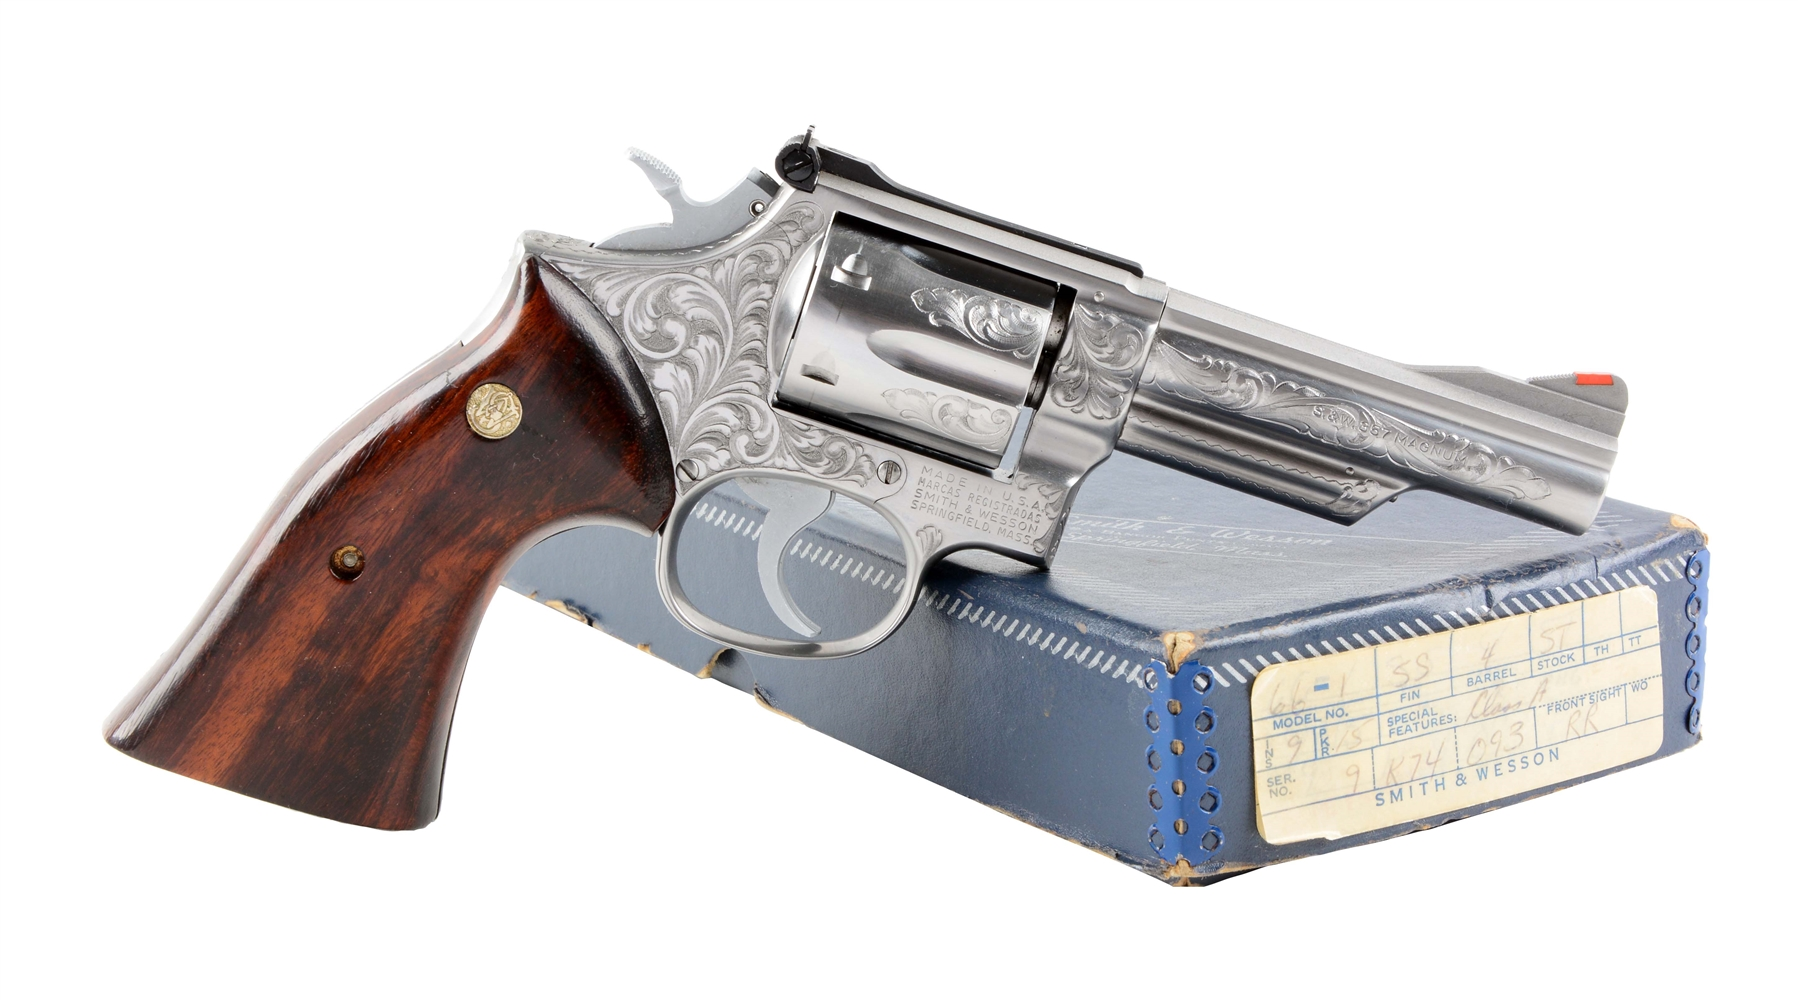 (M) Factory Engraved Smith and Wesson Model 66 Revolver.